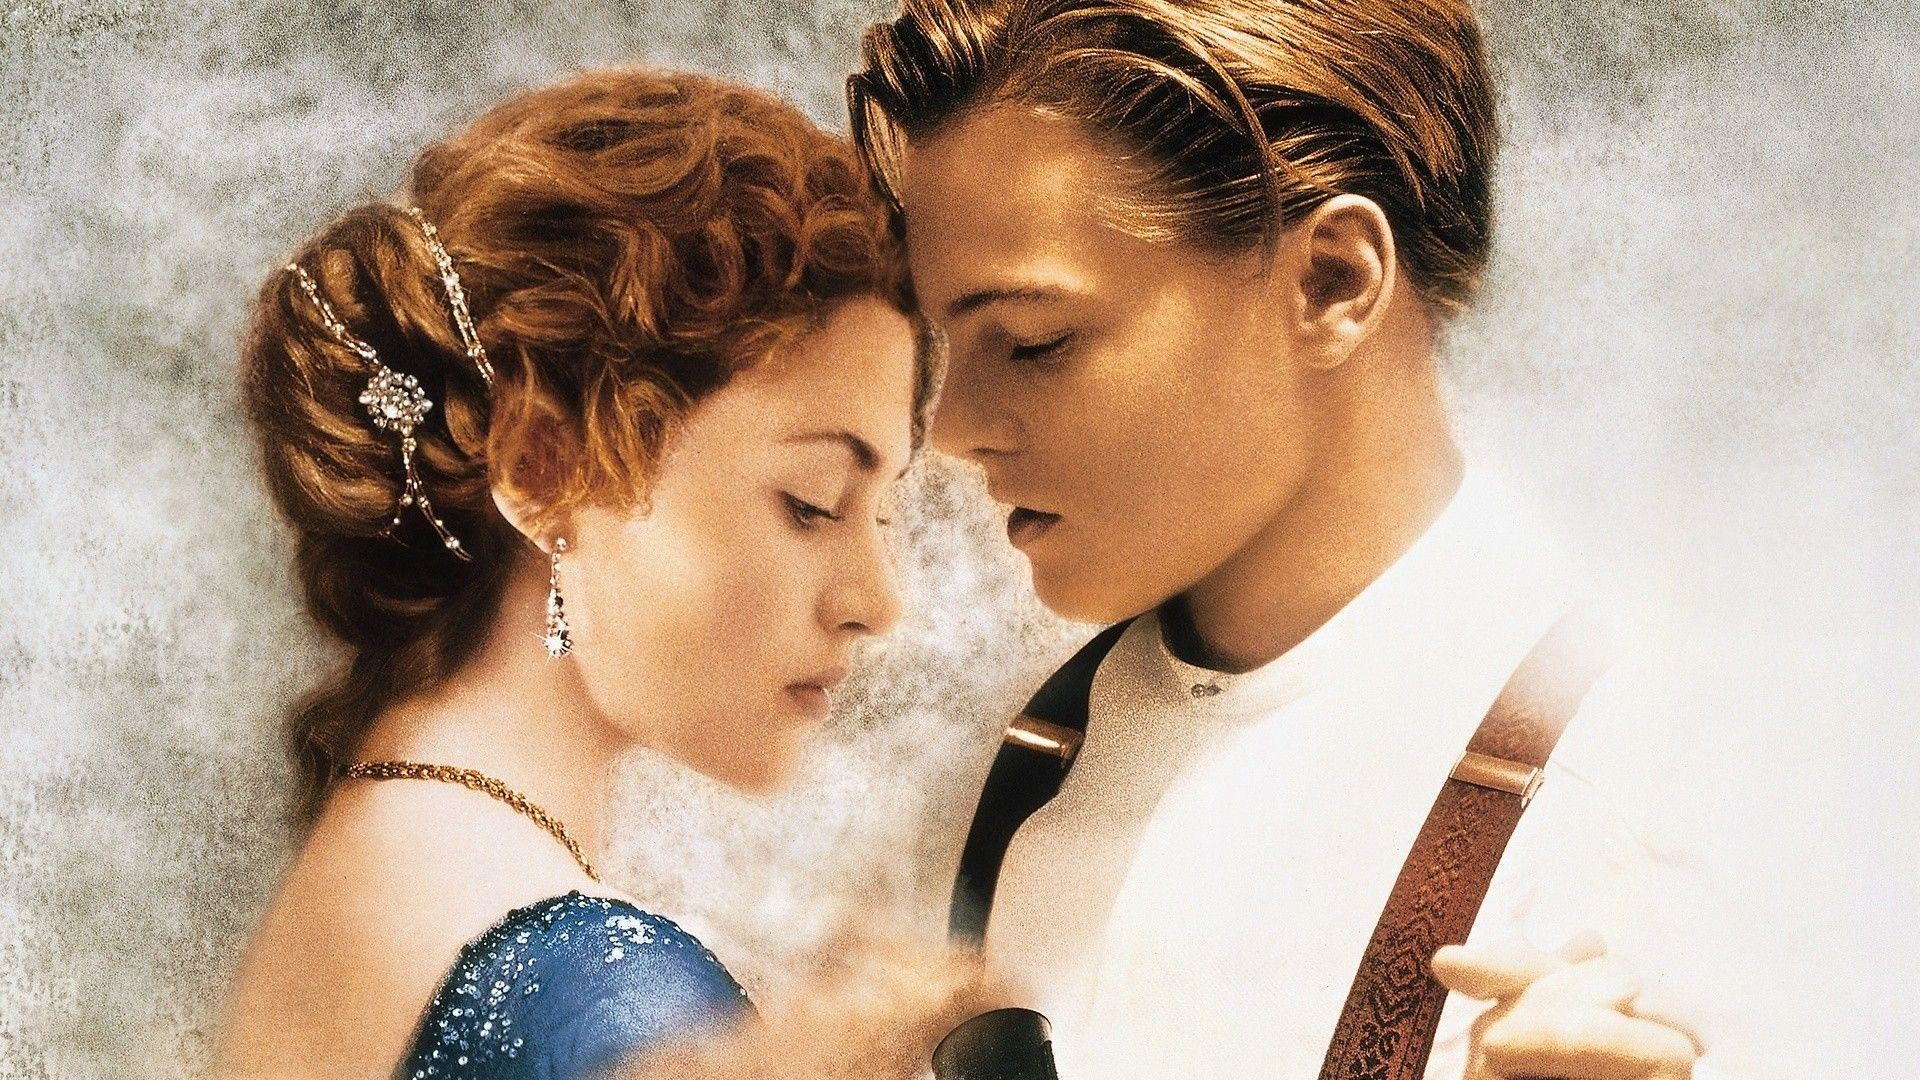 titanic jack and rose wallpaper ·①